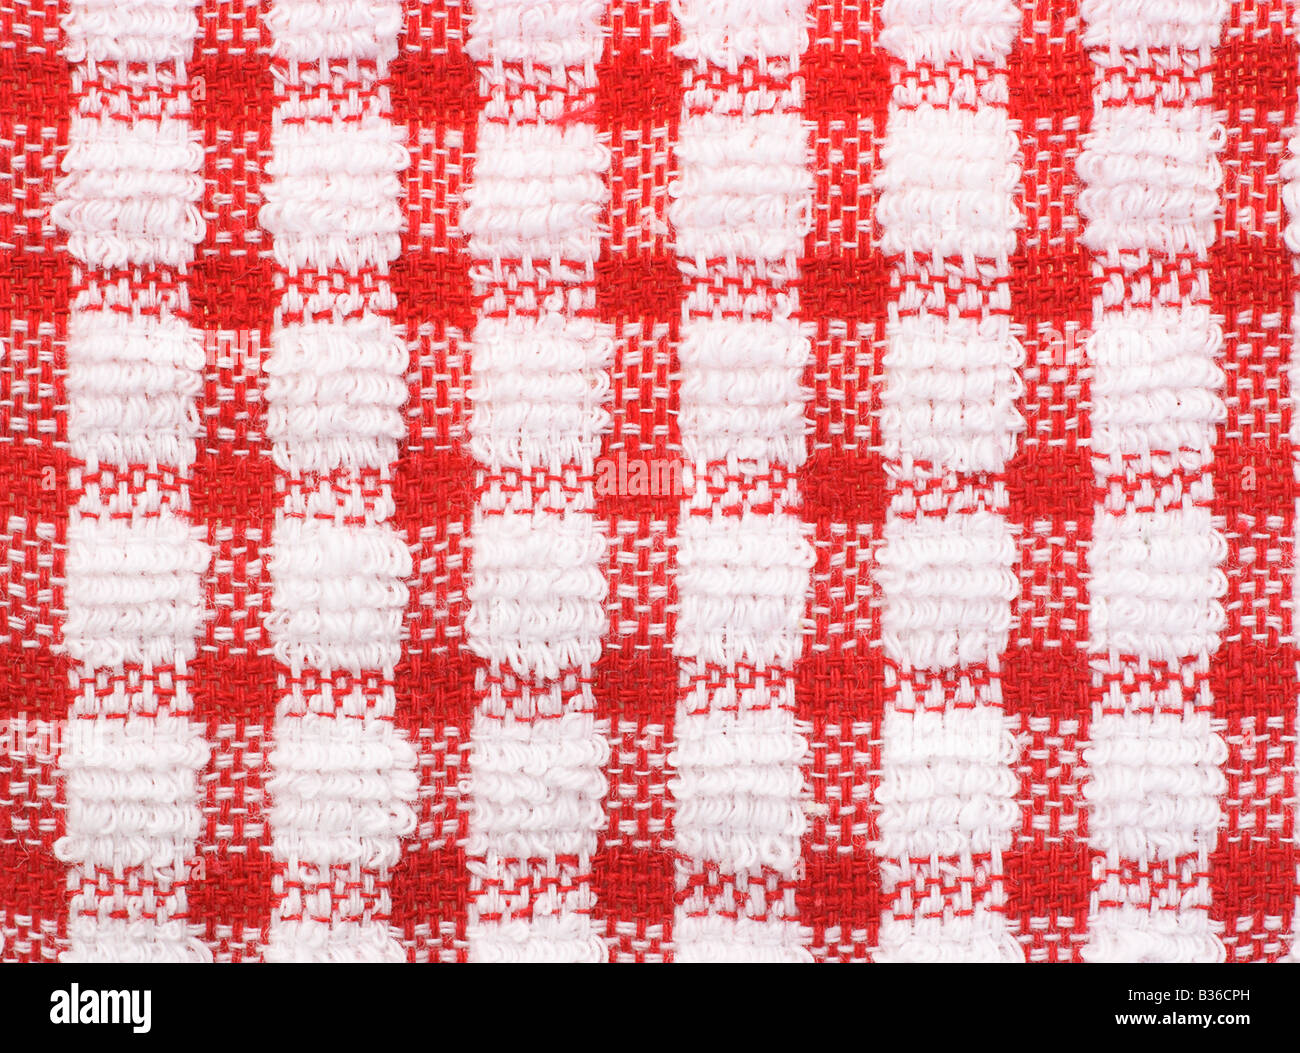 Red And White Checkered Pattern Texture Of Table Cloth For Background